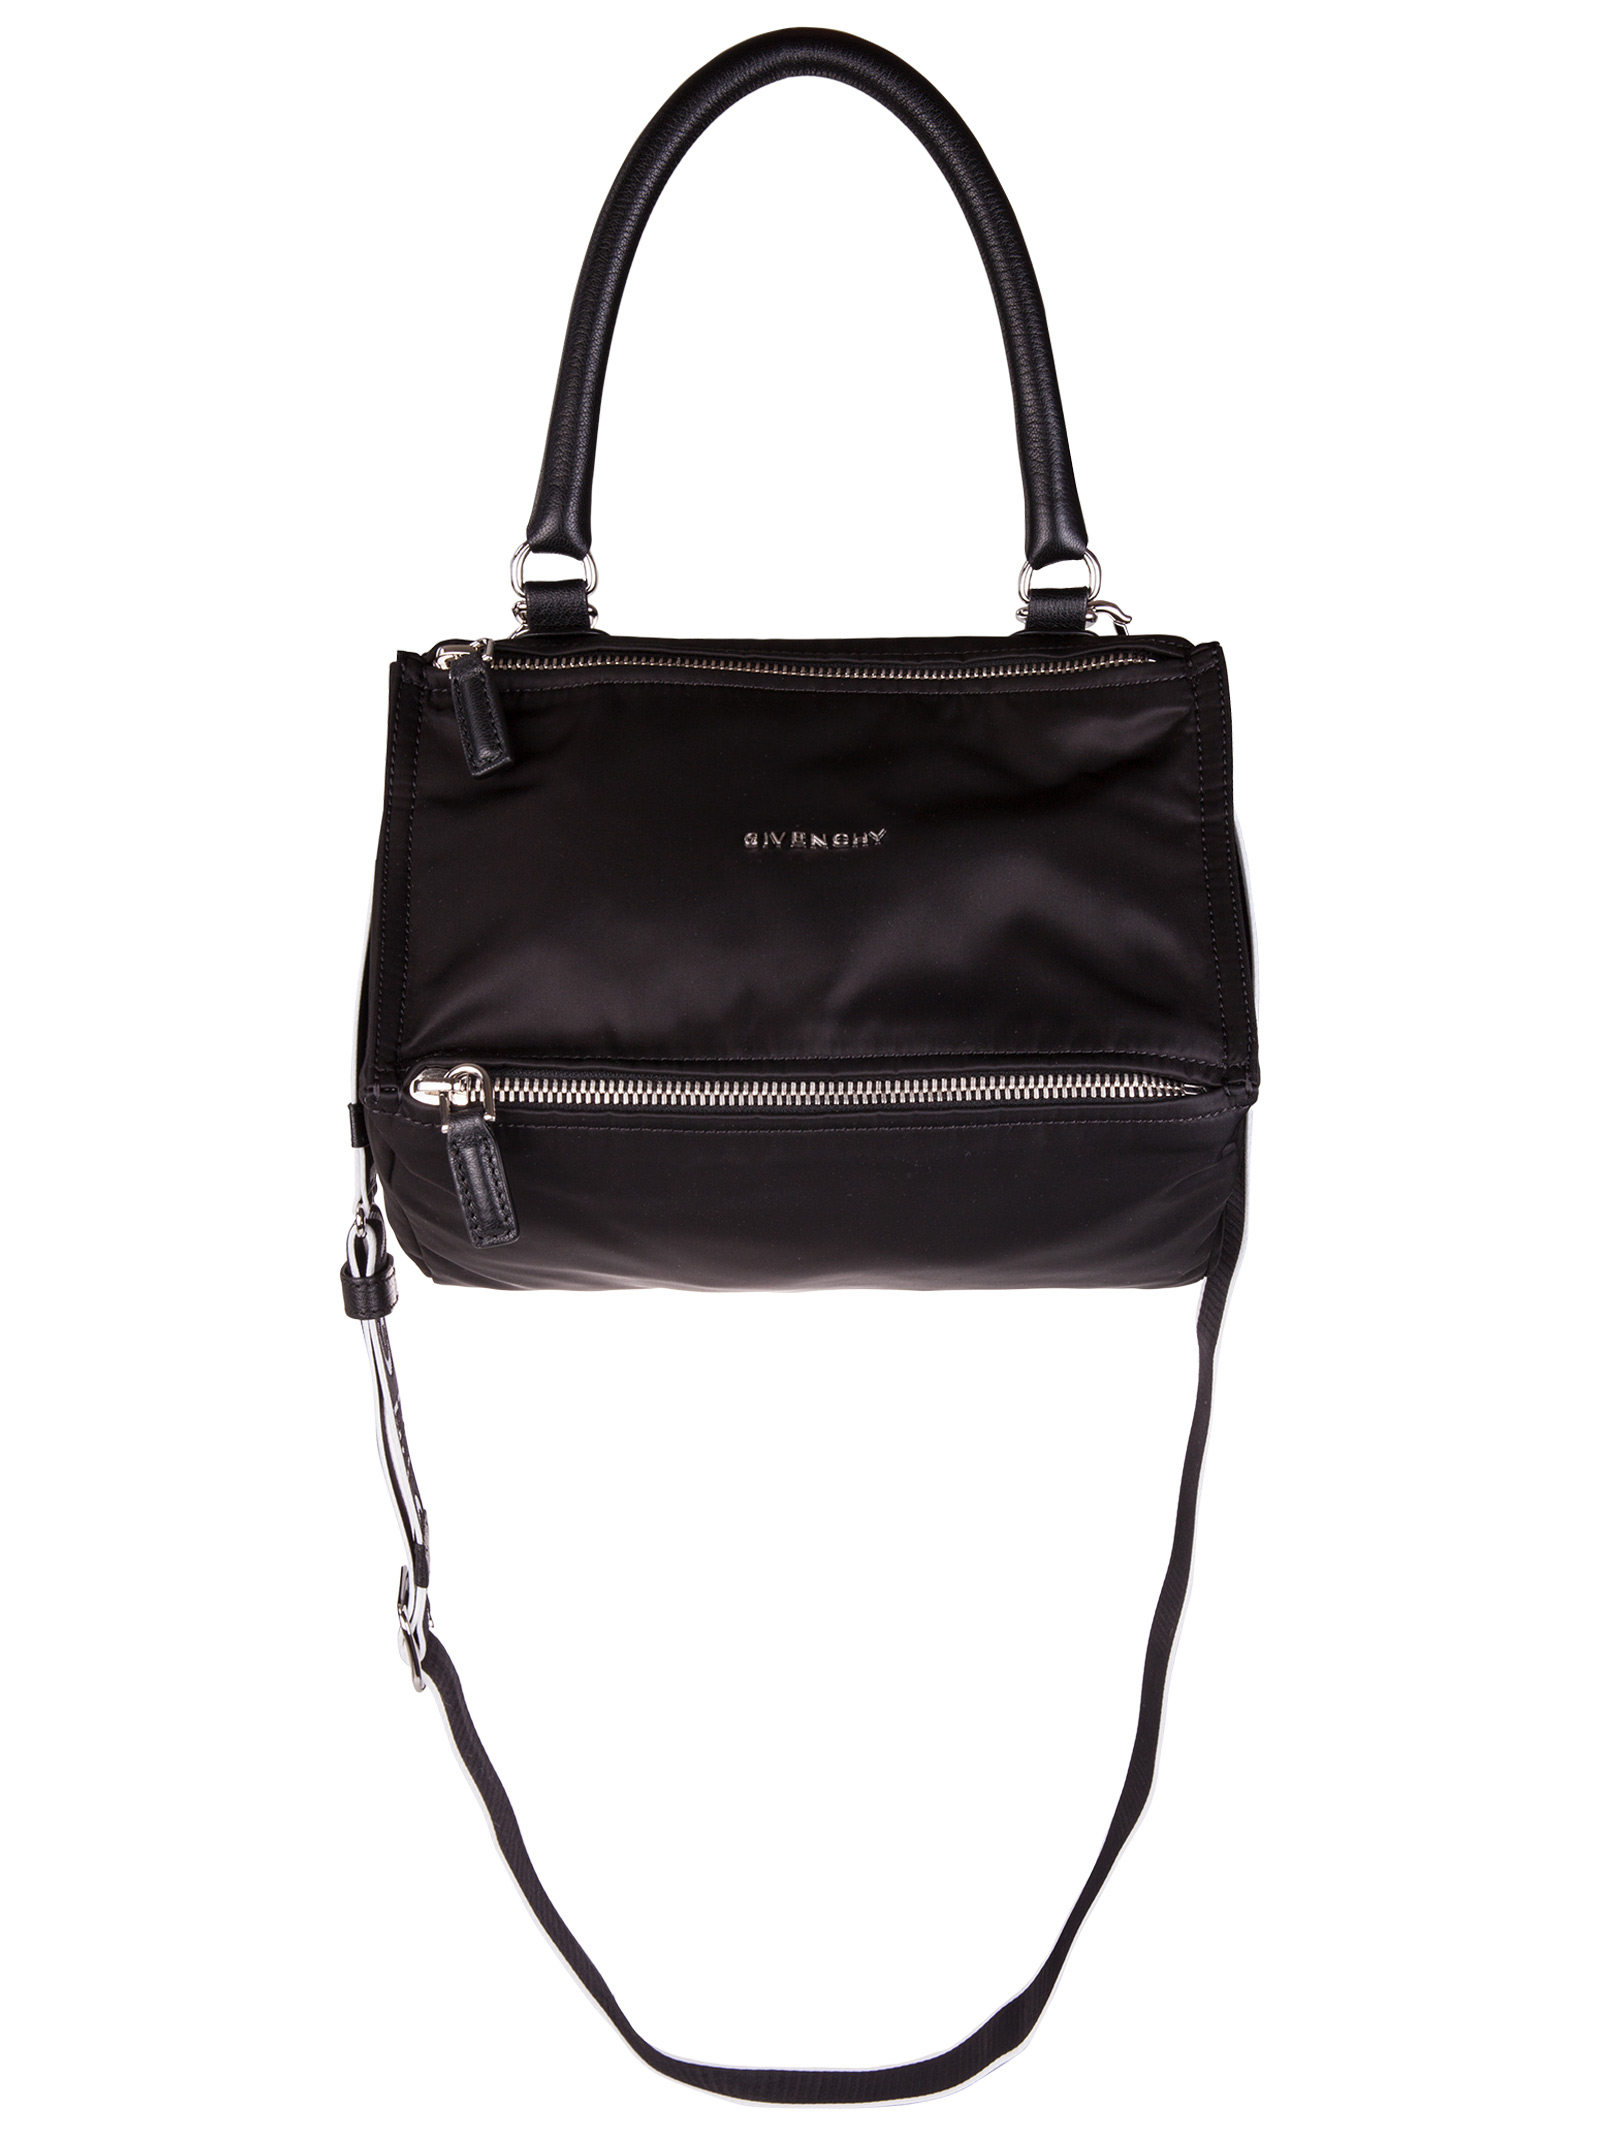 6772d78b3f Givenchy tote bag - Givenchy - Michele Franzese Moda